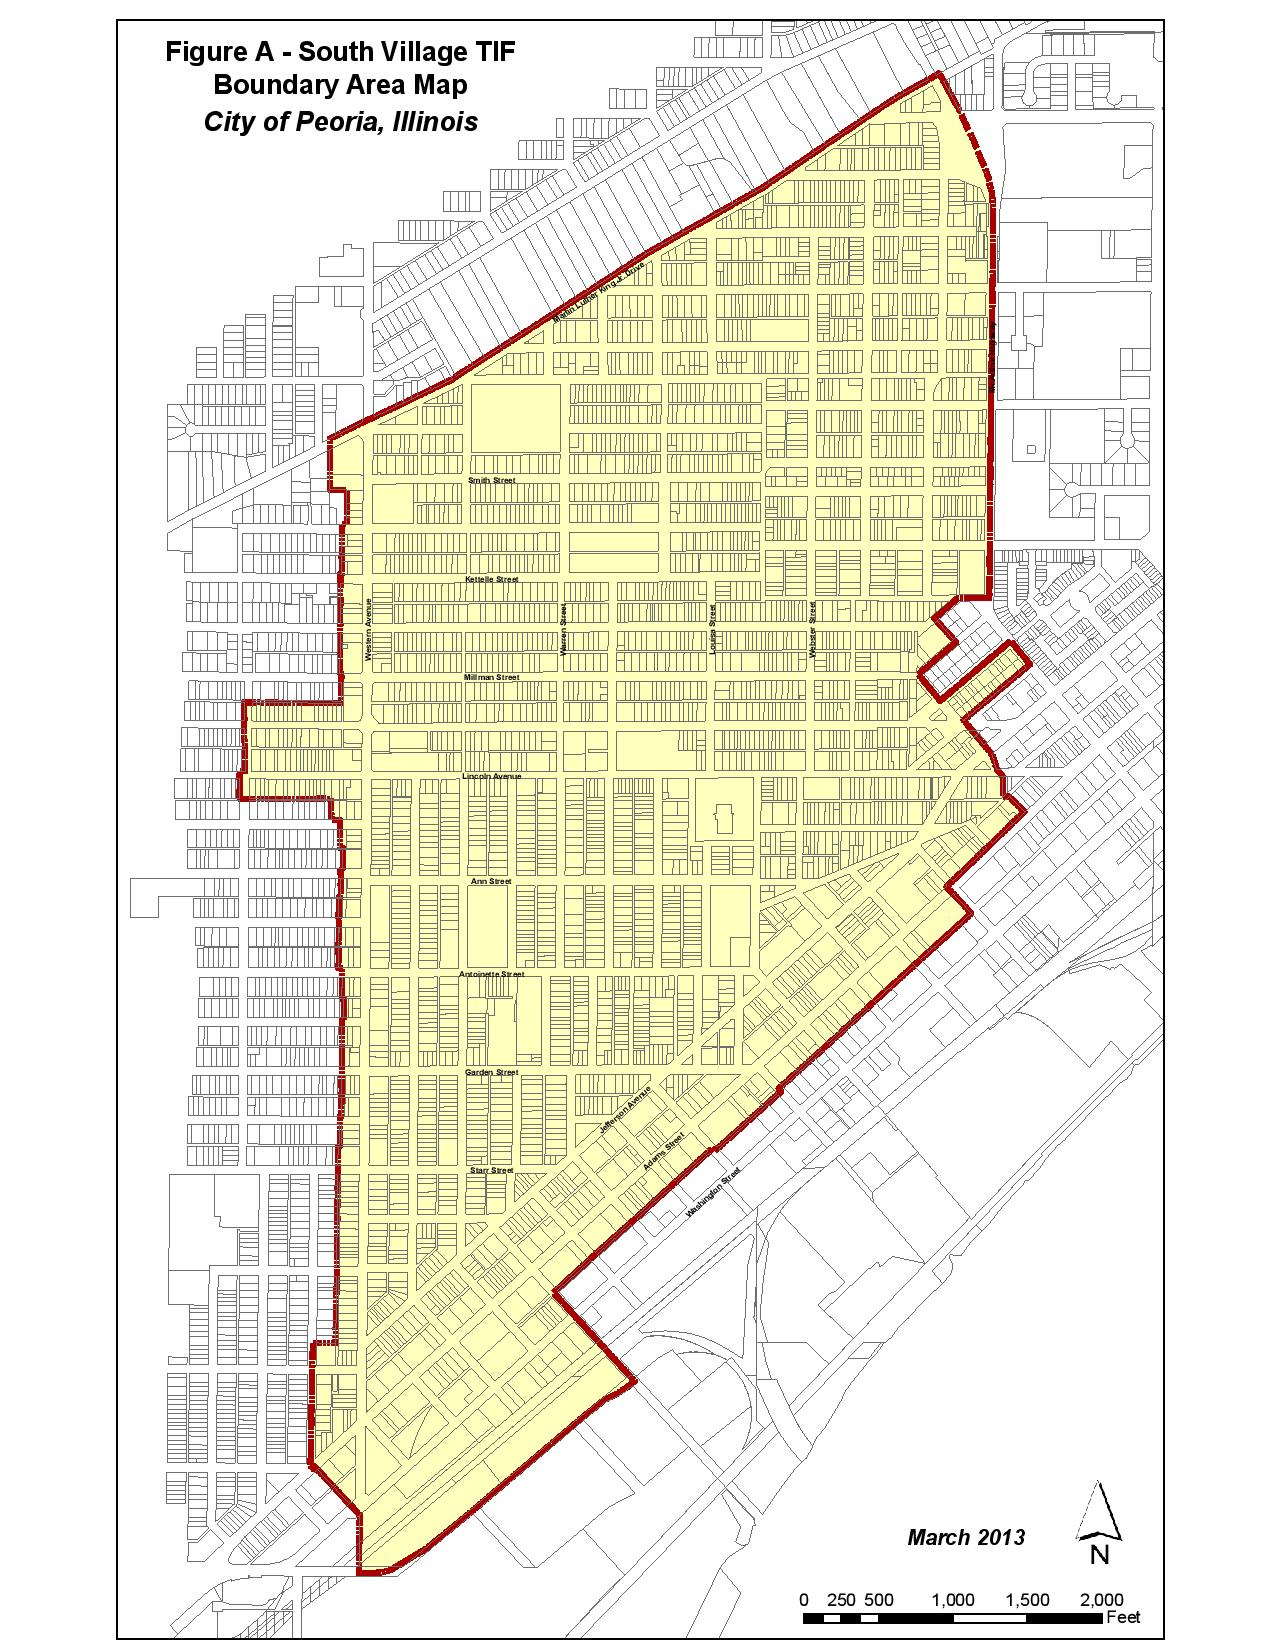 South Village TIF Map Boundary